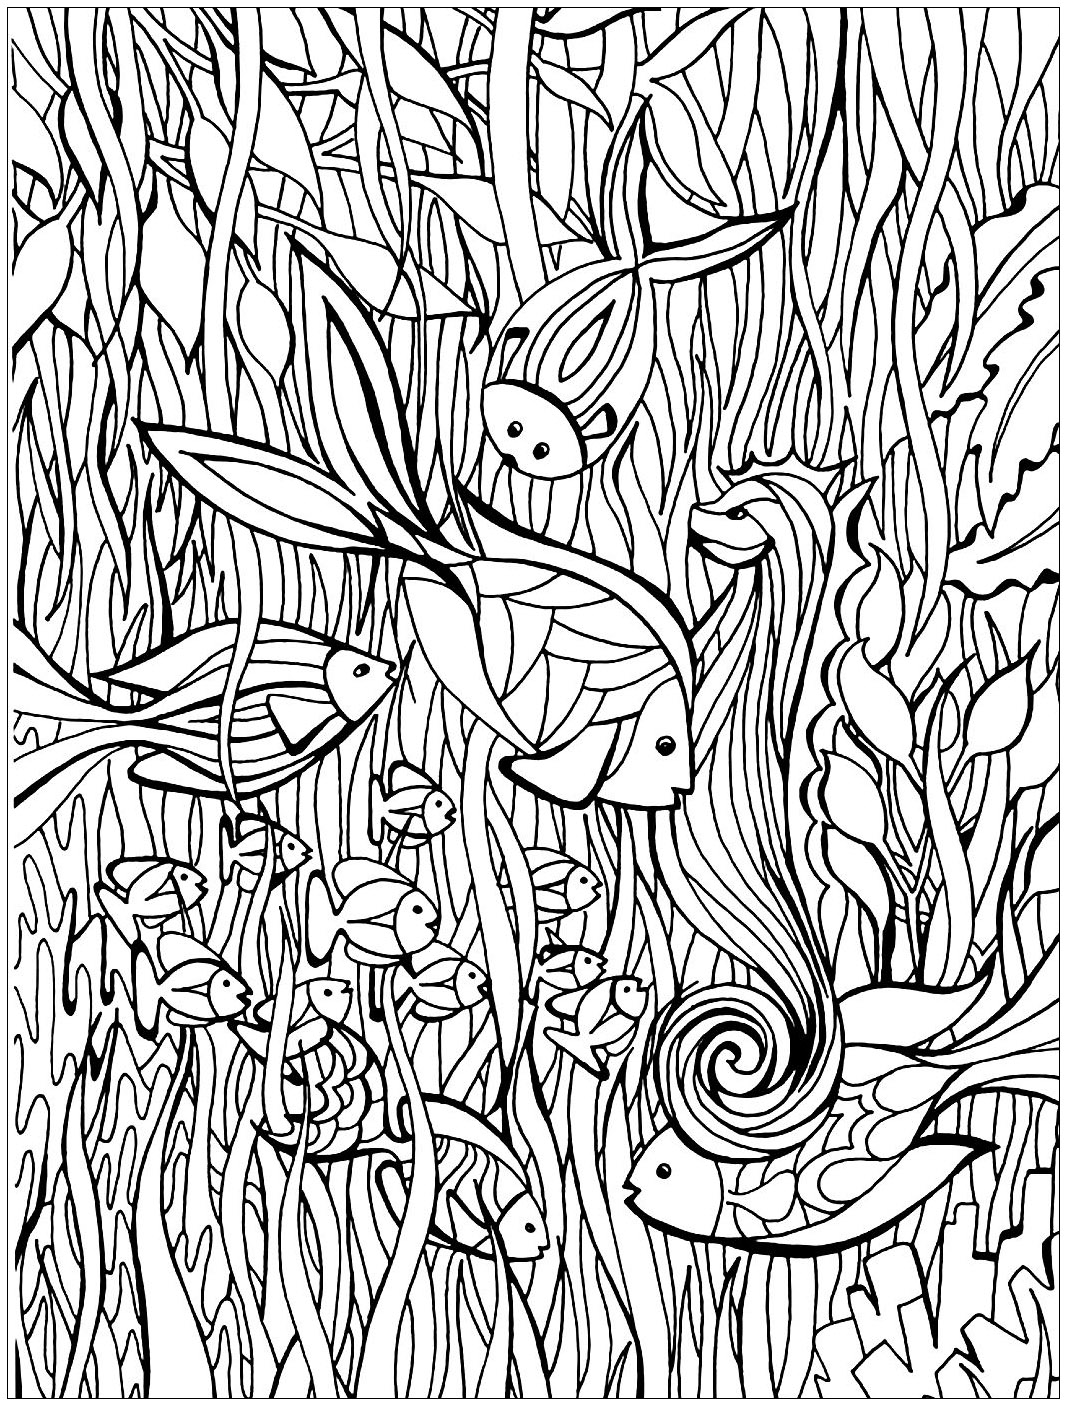 fish coloring pages difficult - photo#7